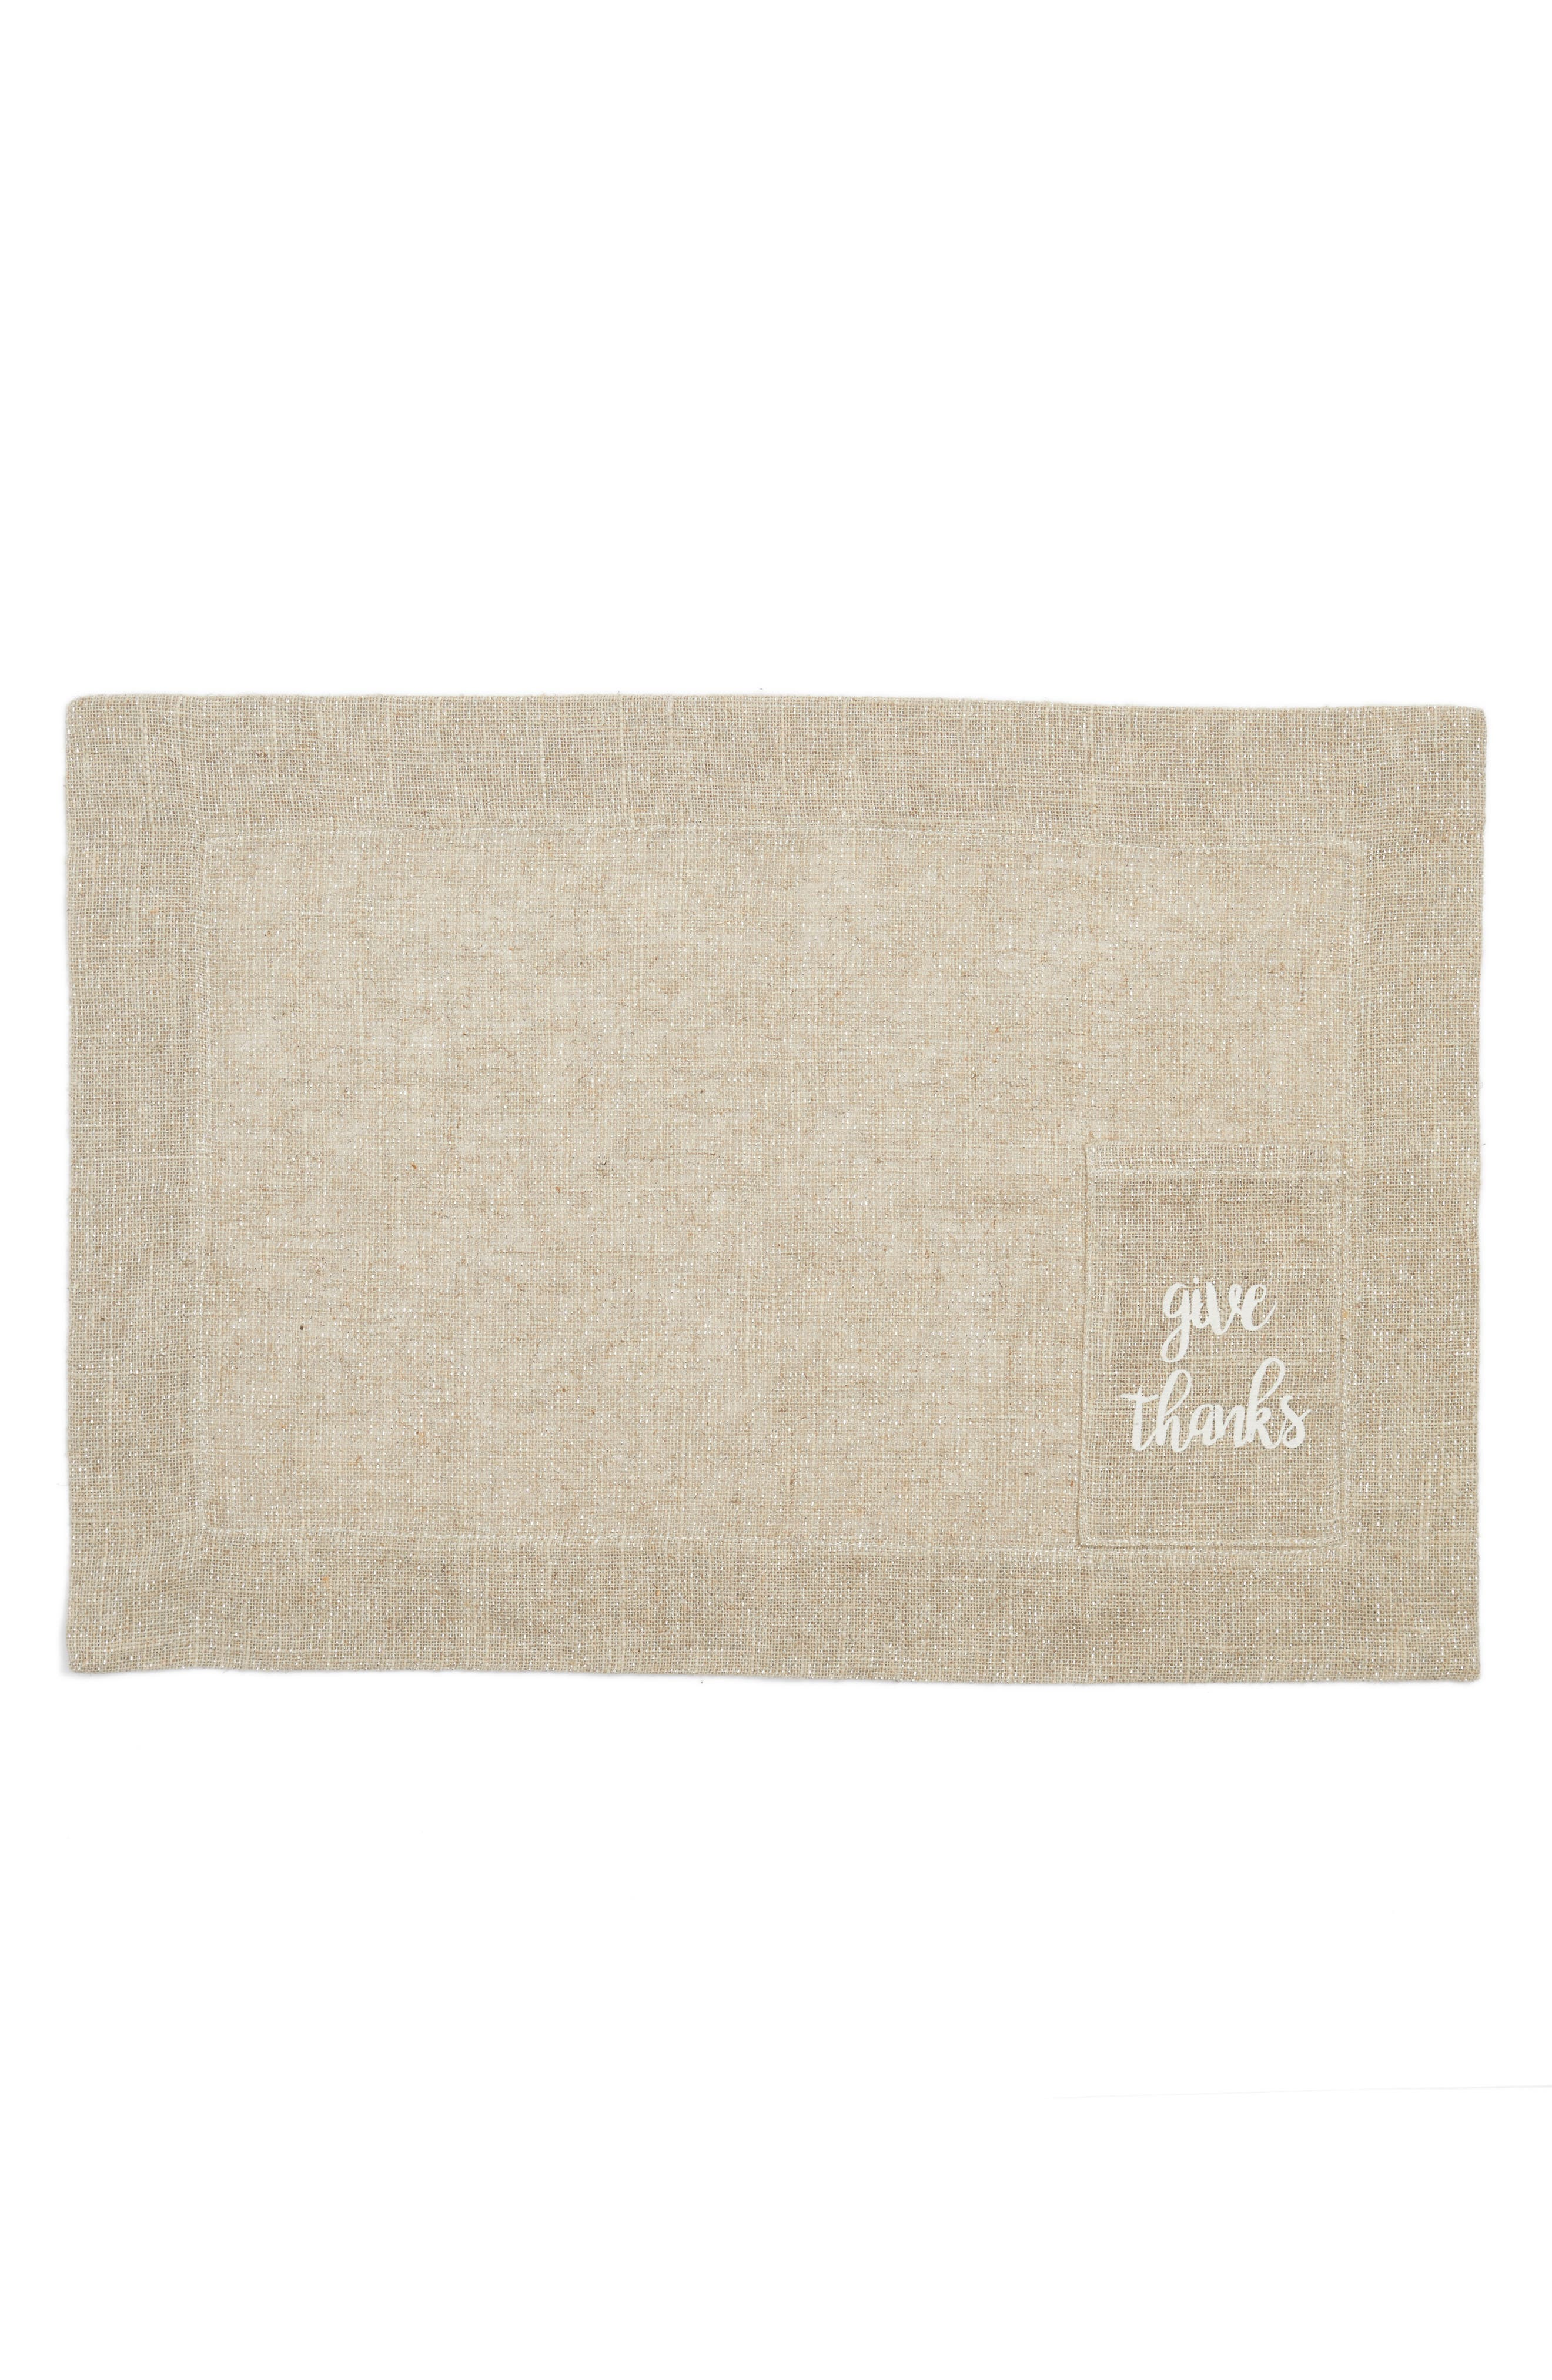 Give Thanks Placemat,                         Main,                         color, 250